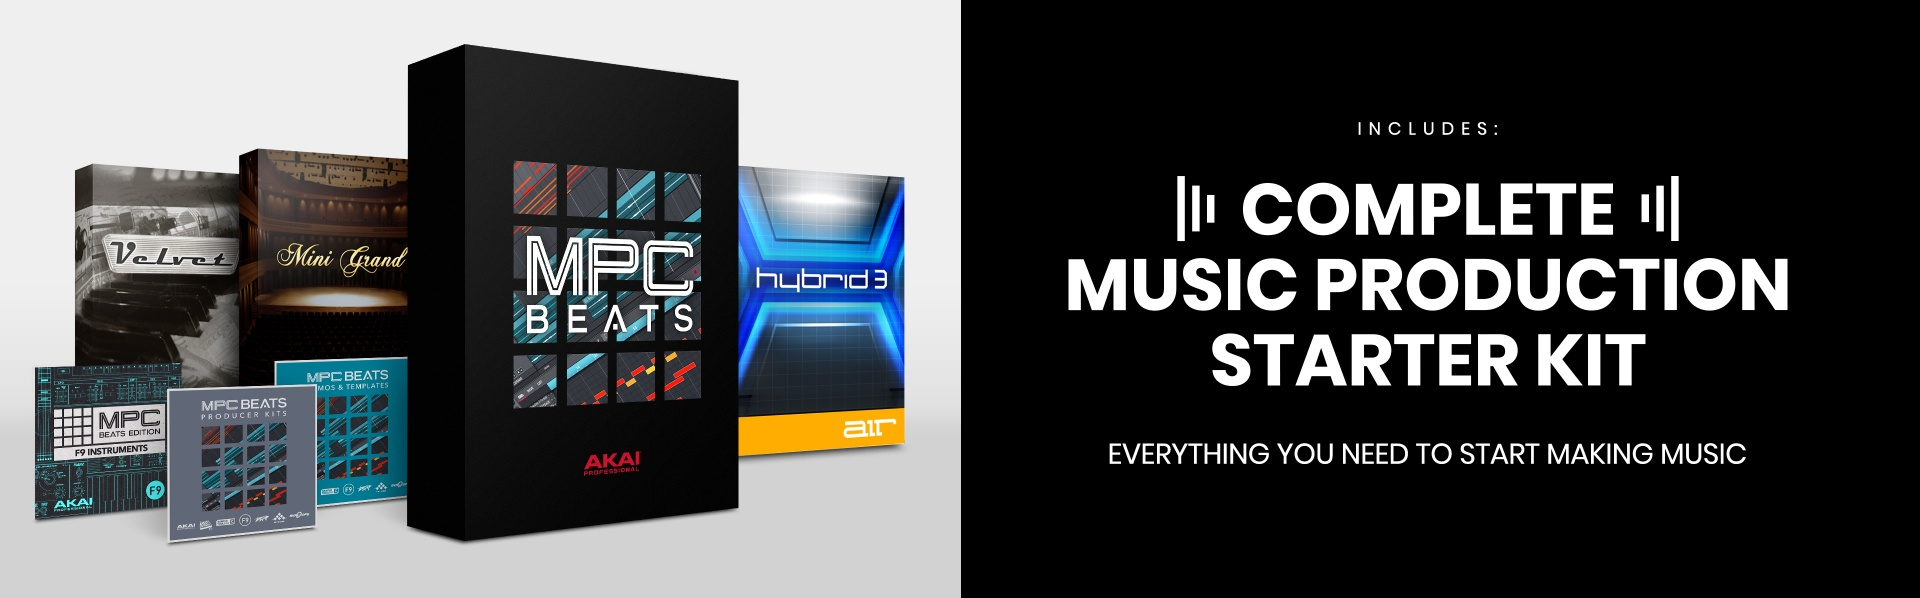 Complete music production software package to make beats